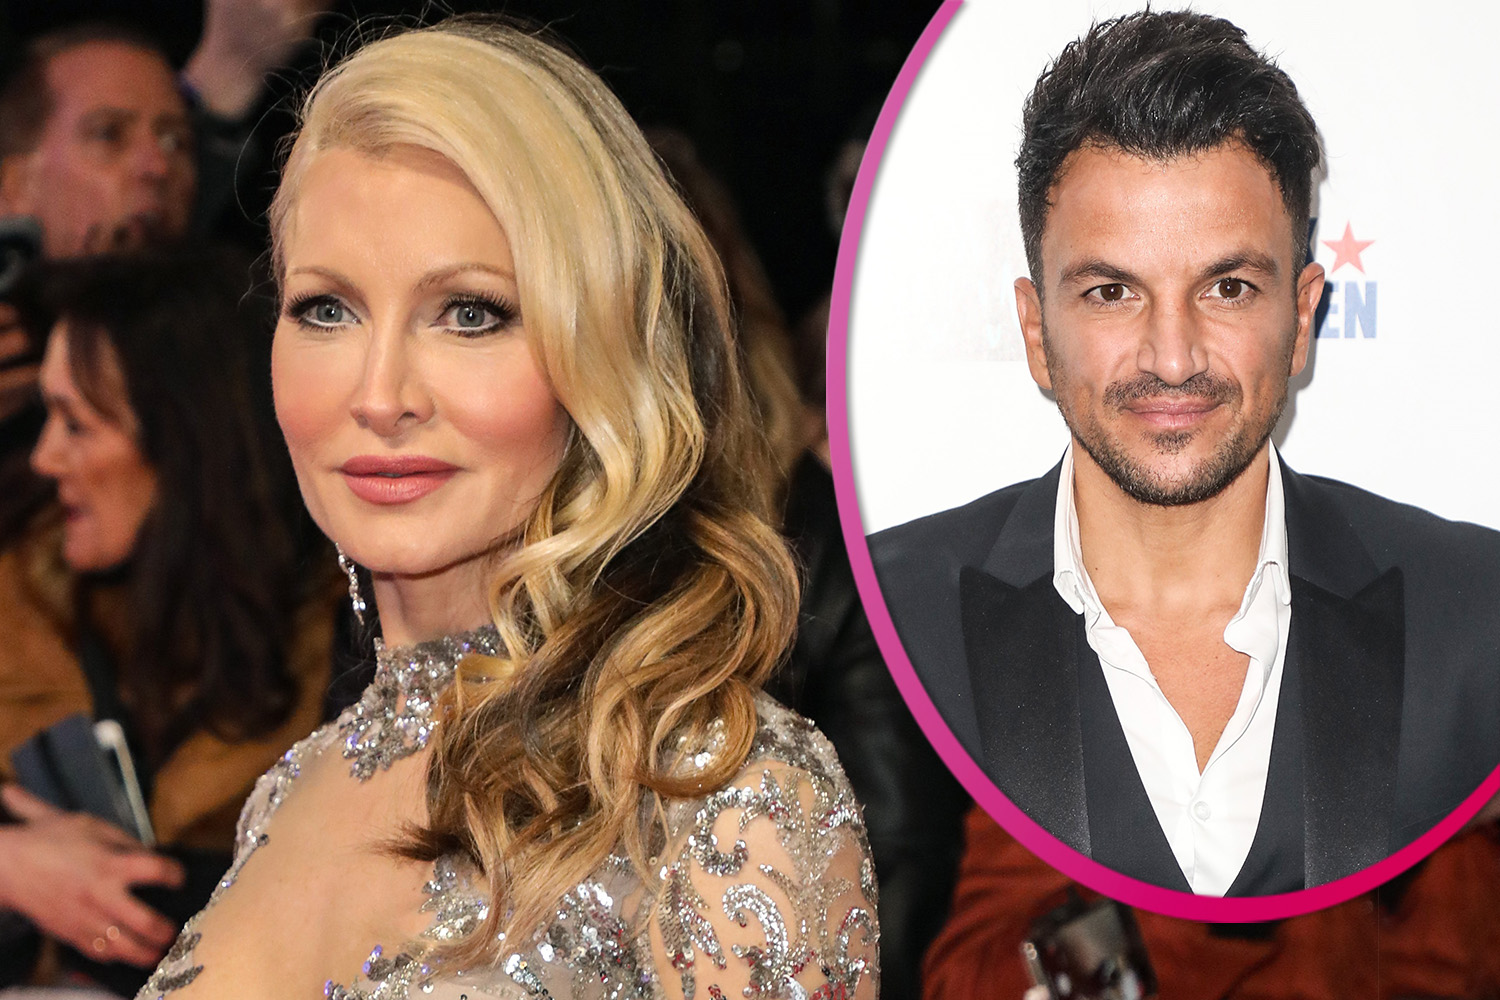 Caprice Bourret calls out Peter Andre for calling her 'foolish' over coronavirus comments